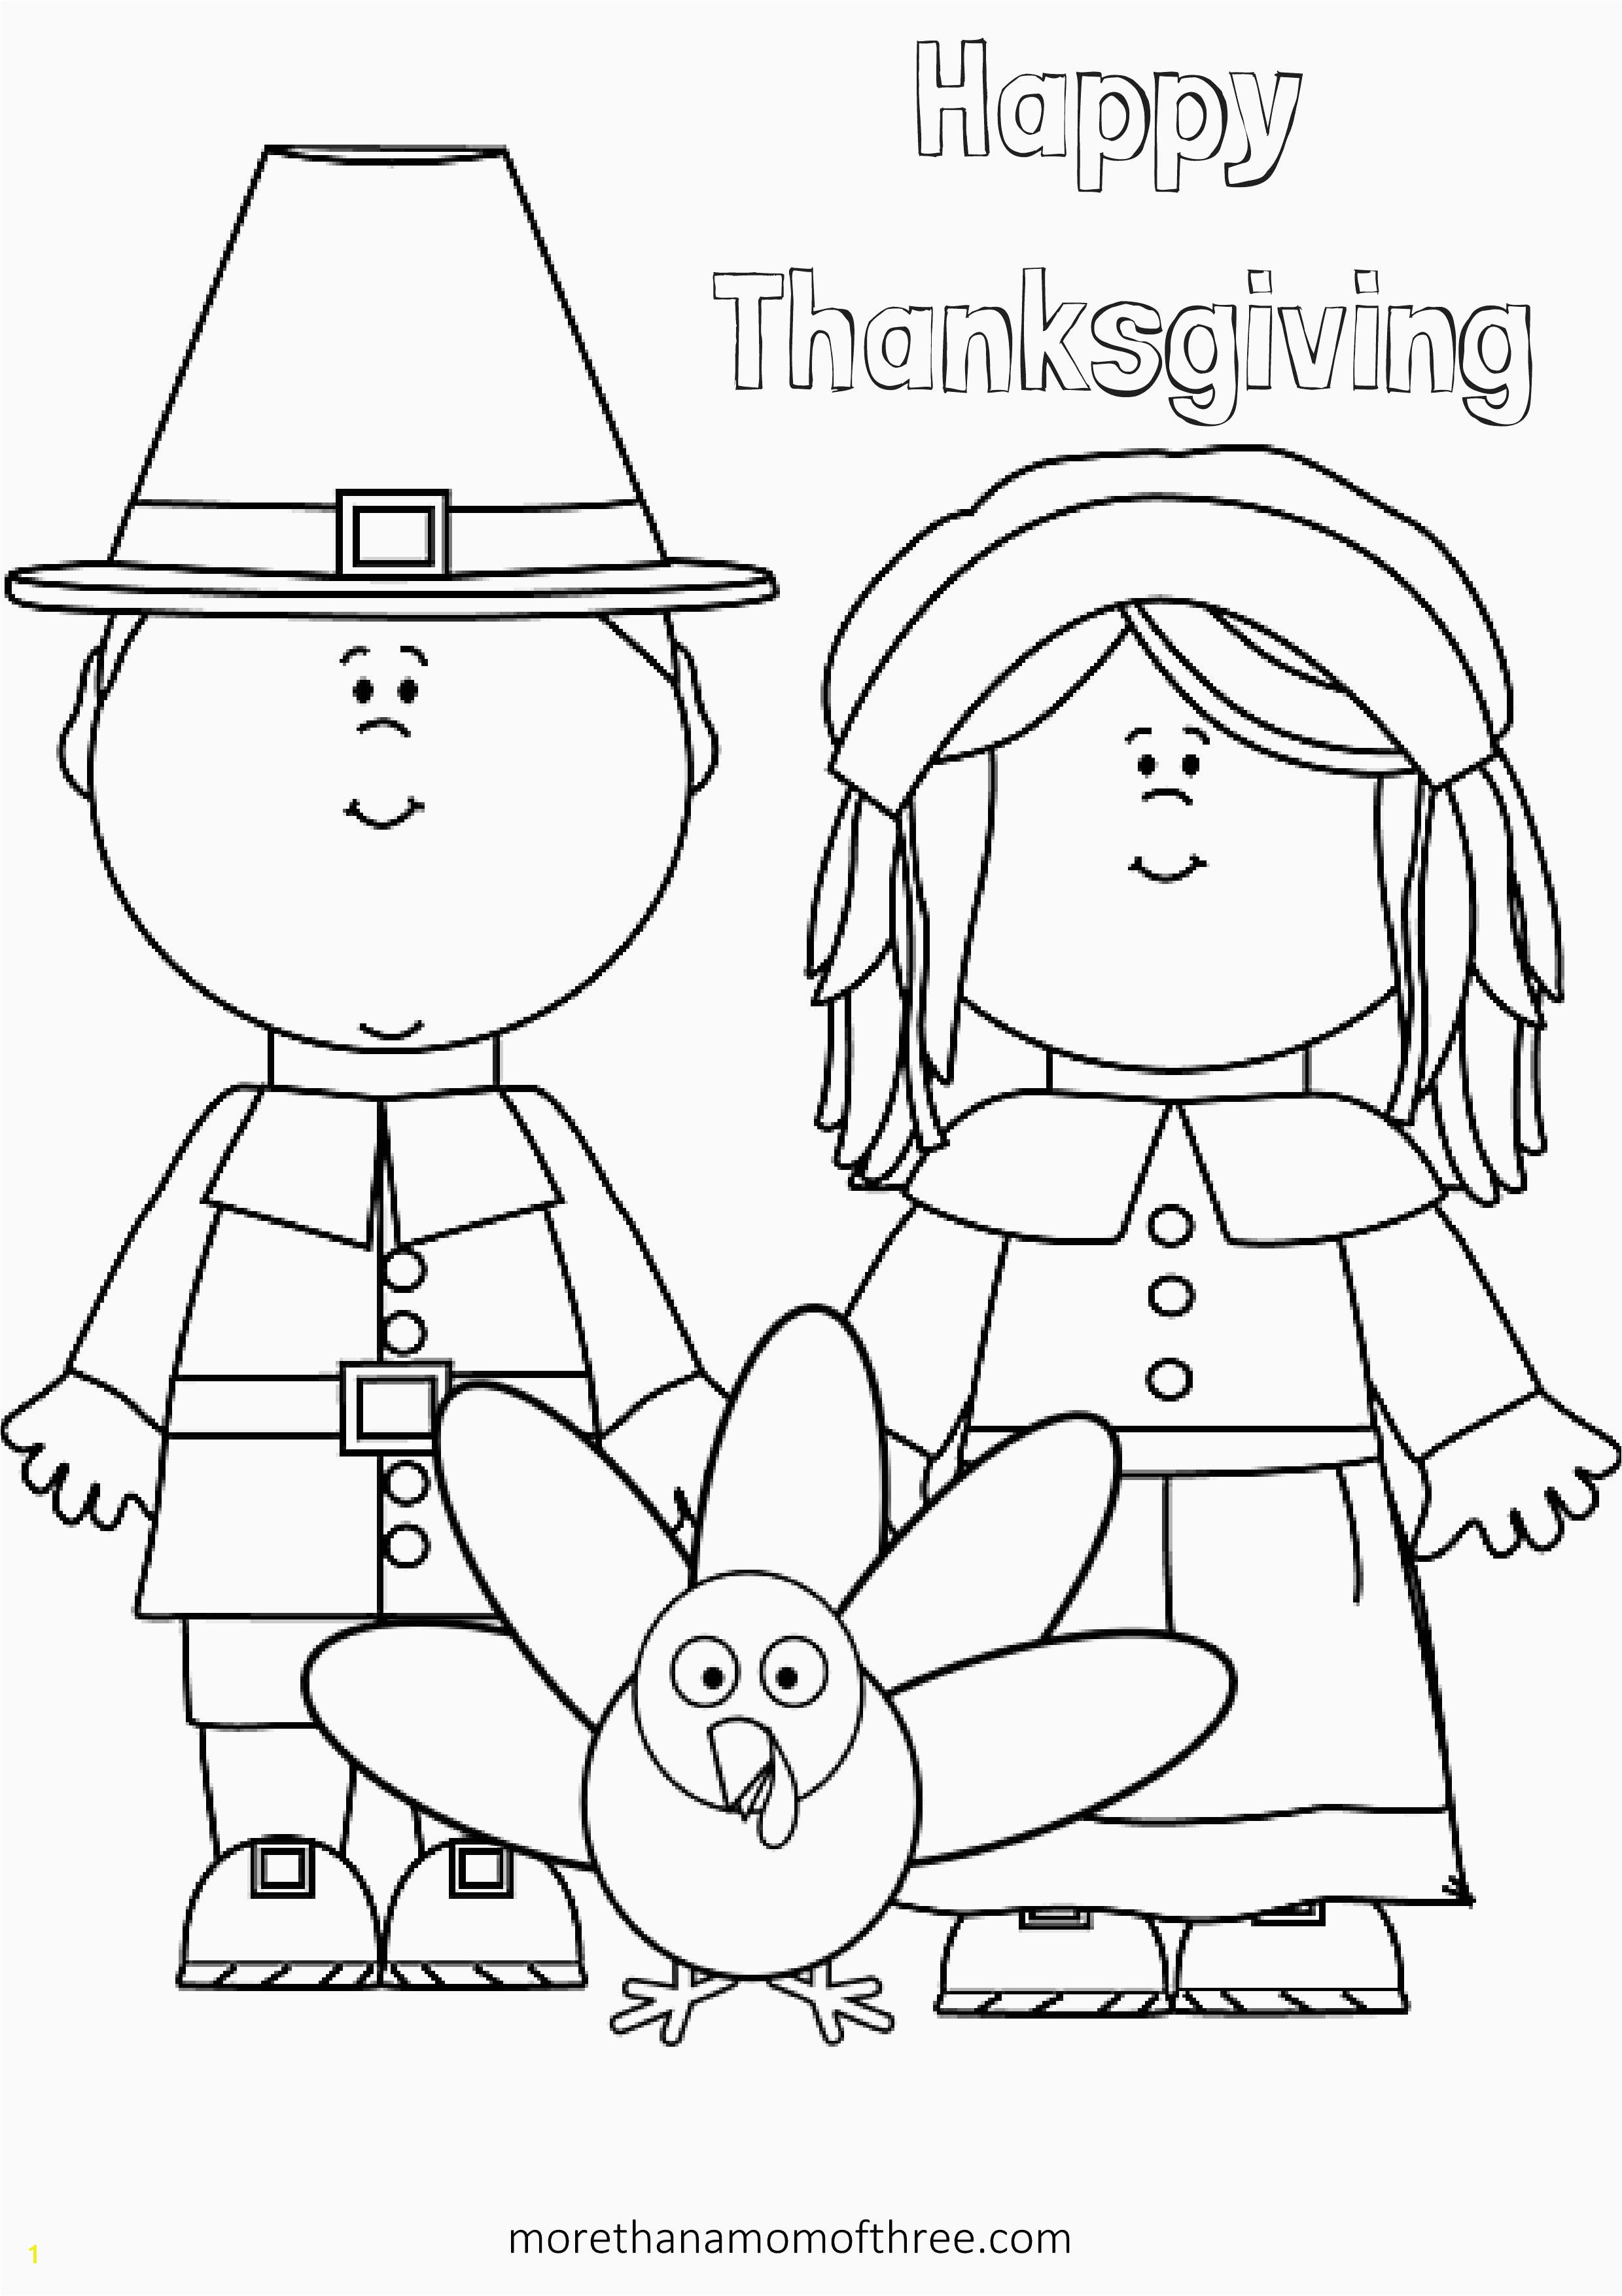 Coloring Pages for Kids at Thanksgiving Arresting Inspirational Disney Thanksgiving Coloring Pages Printables